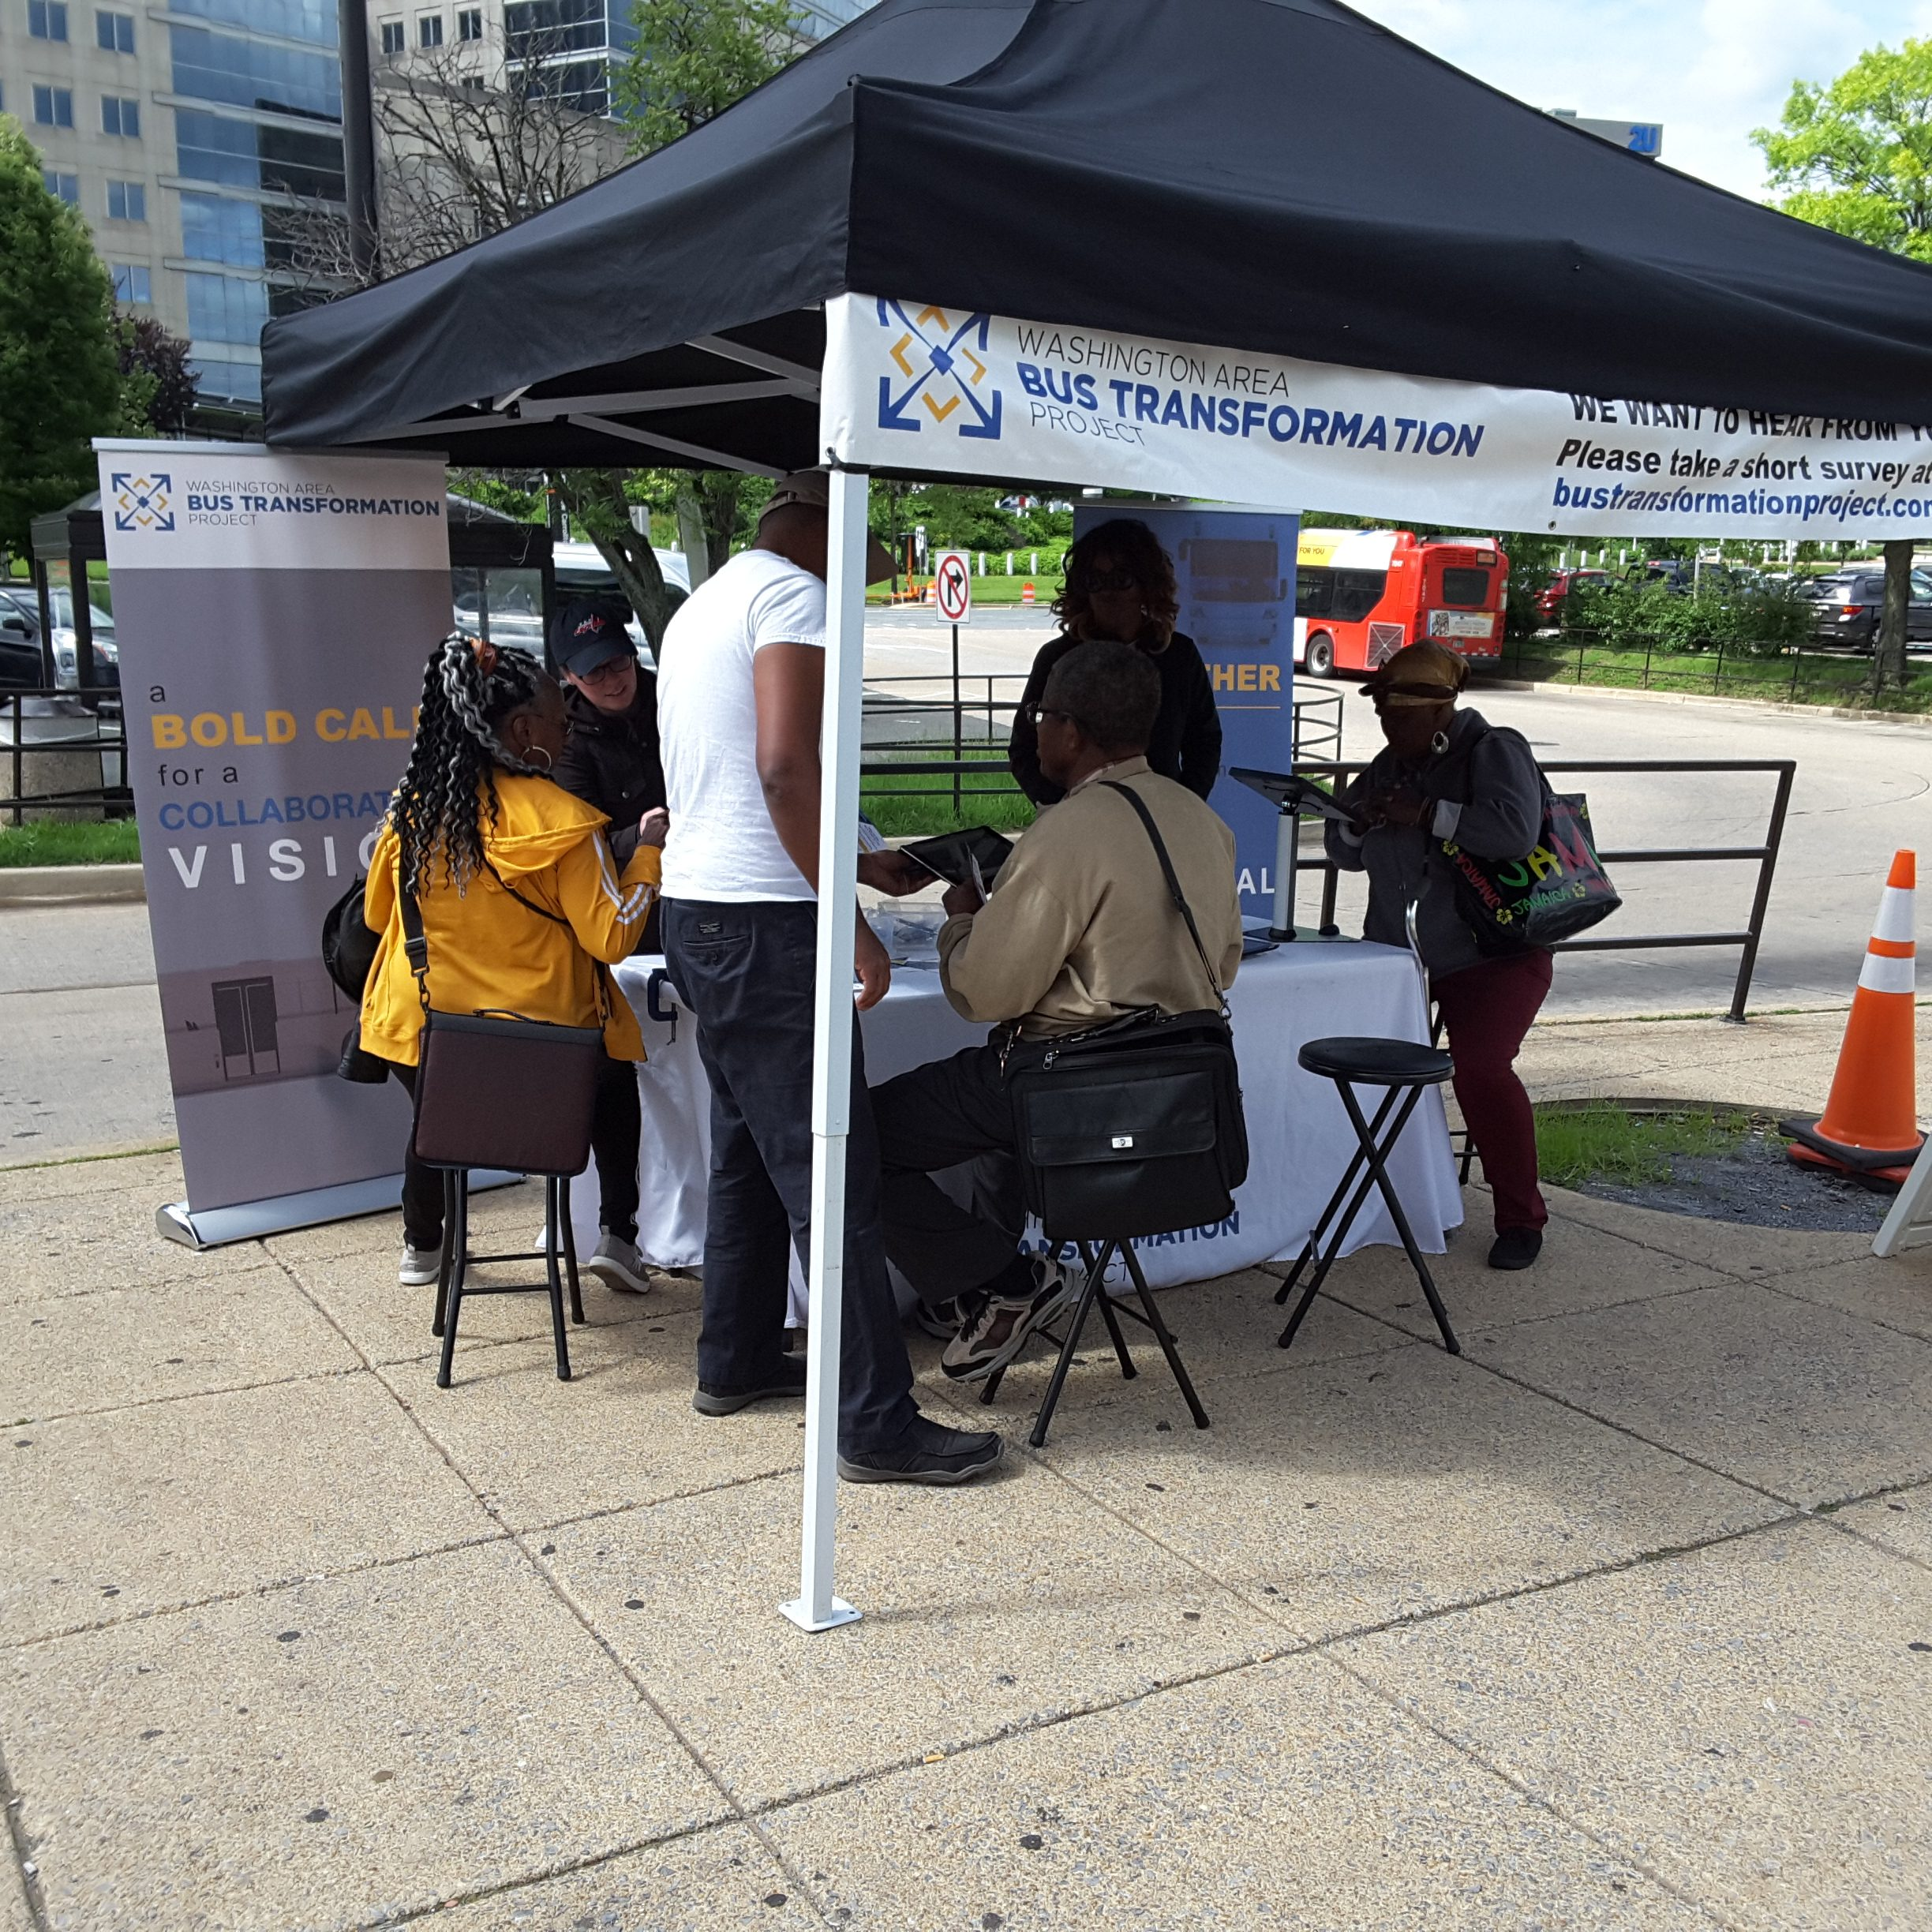 Event booth with people at the New Carrollton Metro Station